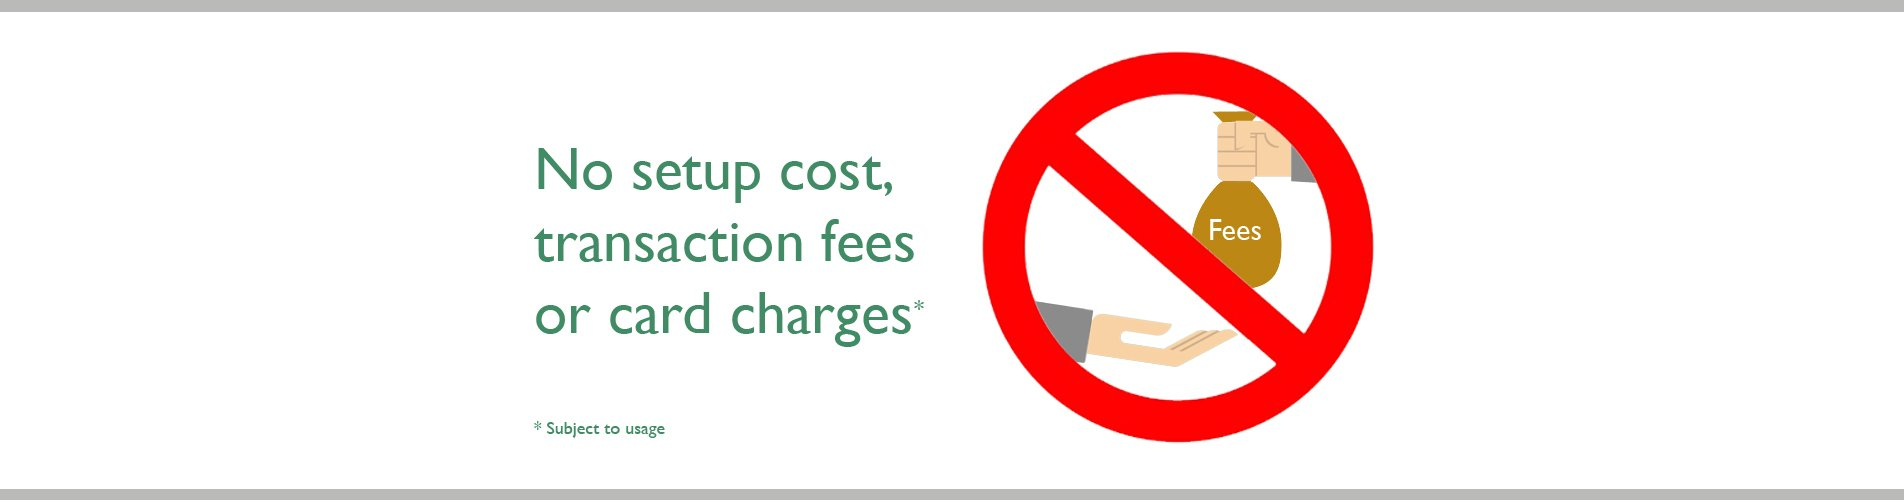 no set up costs or transaction fees or card charges